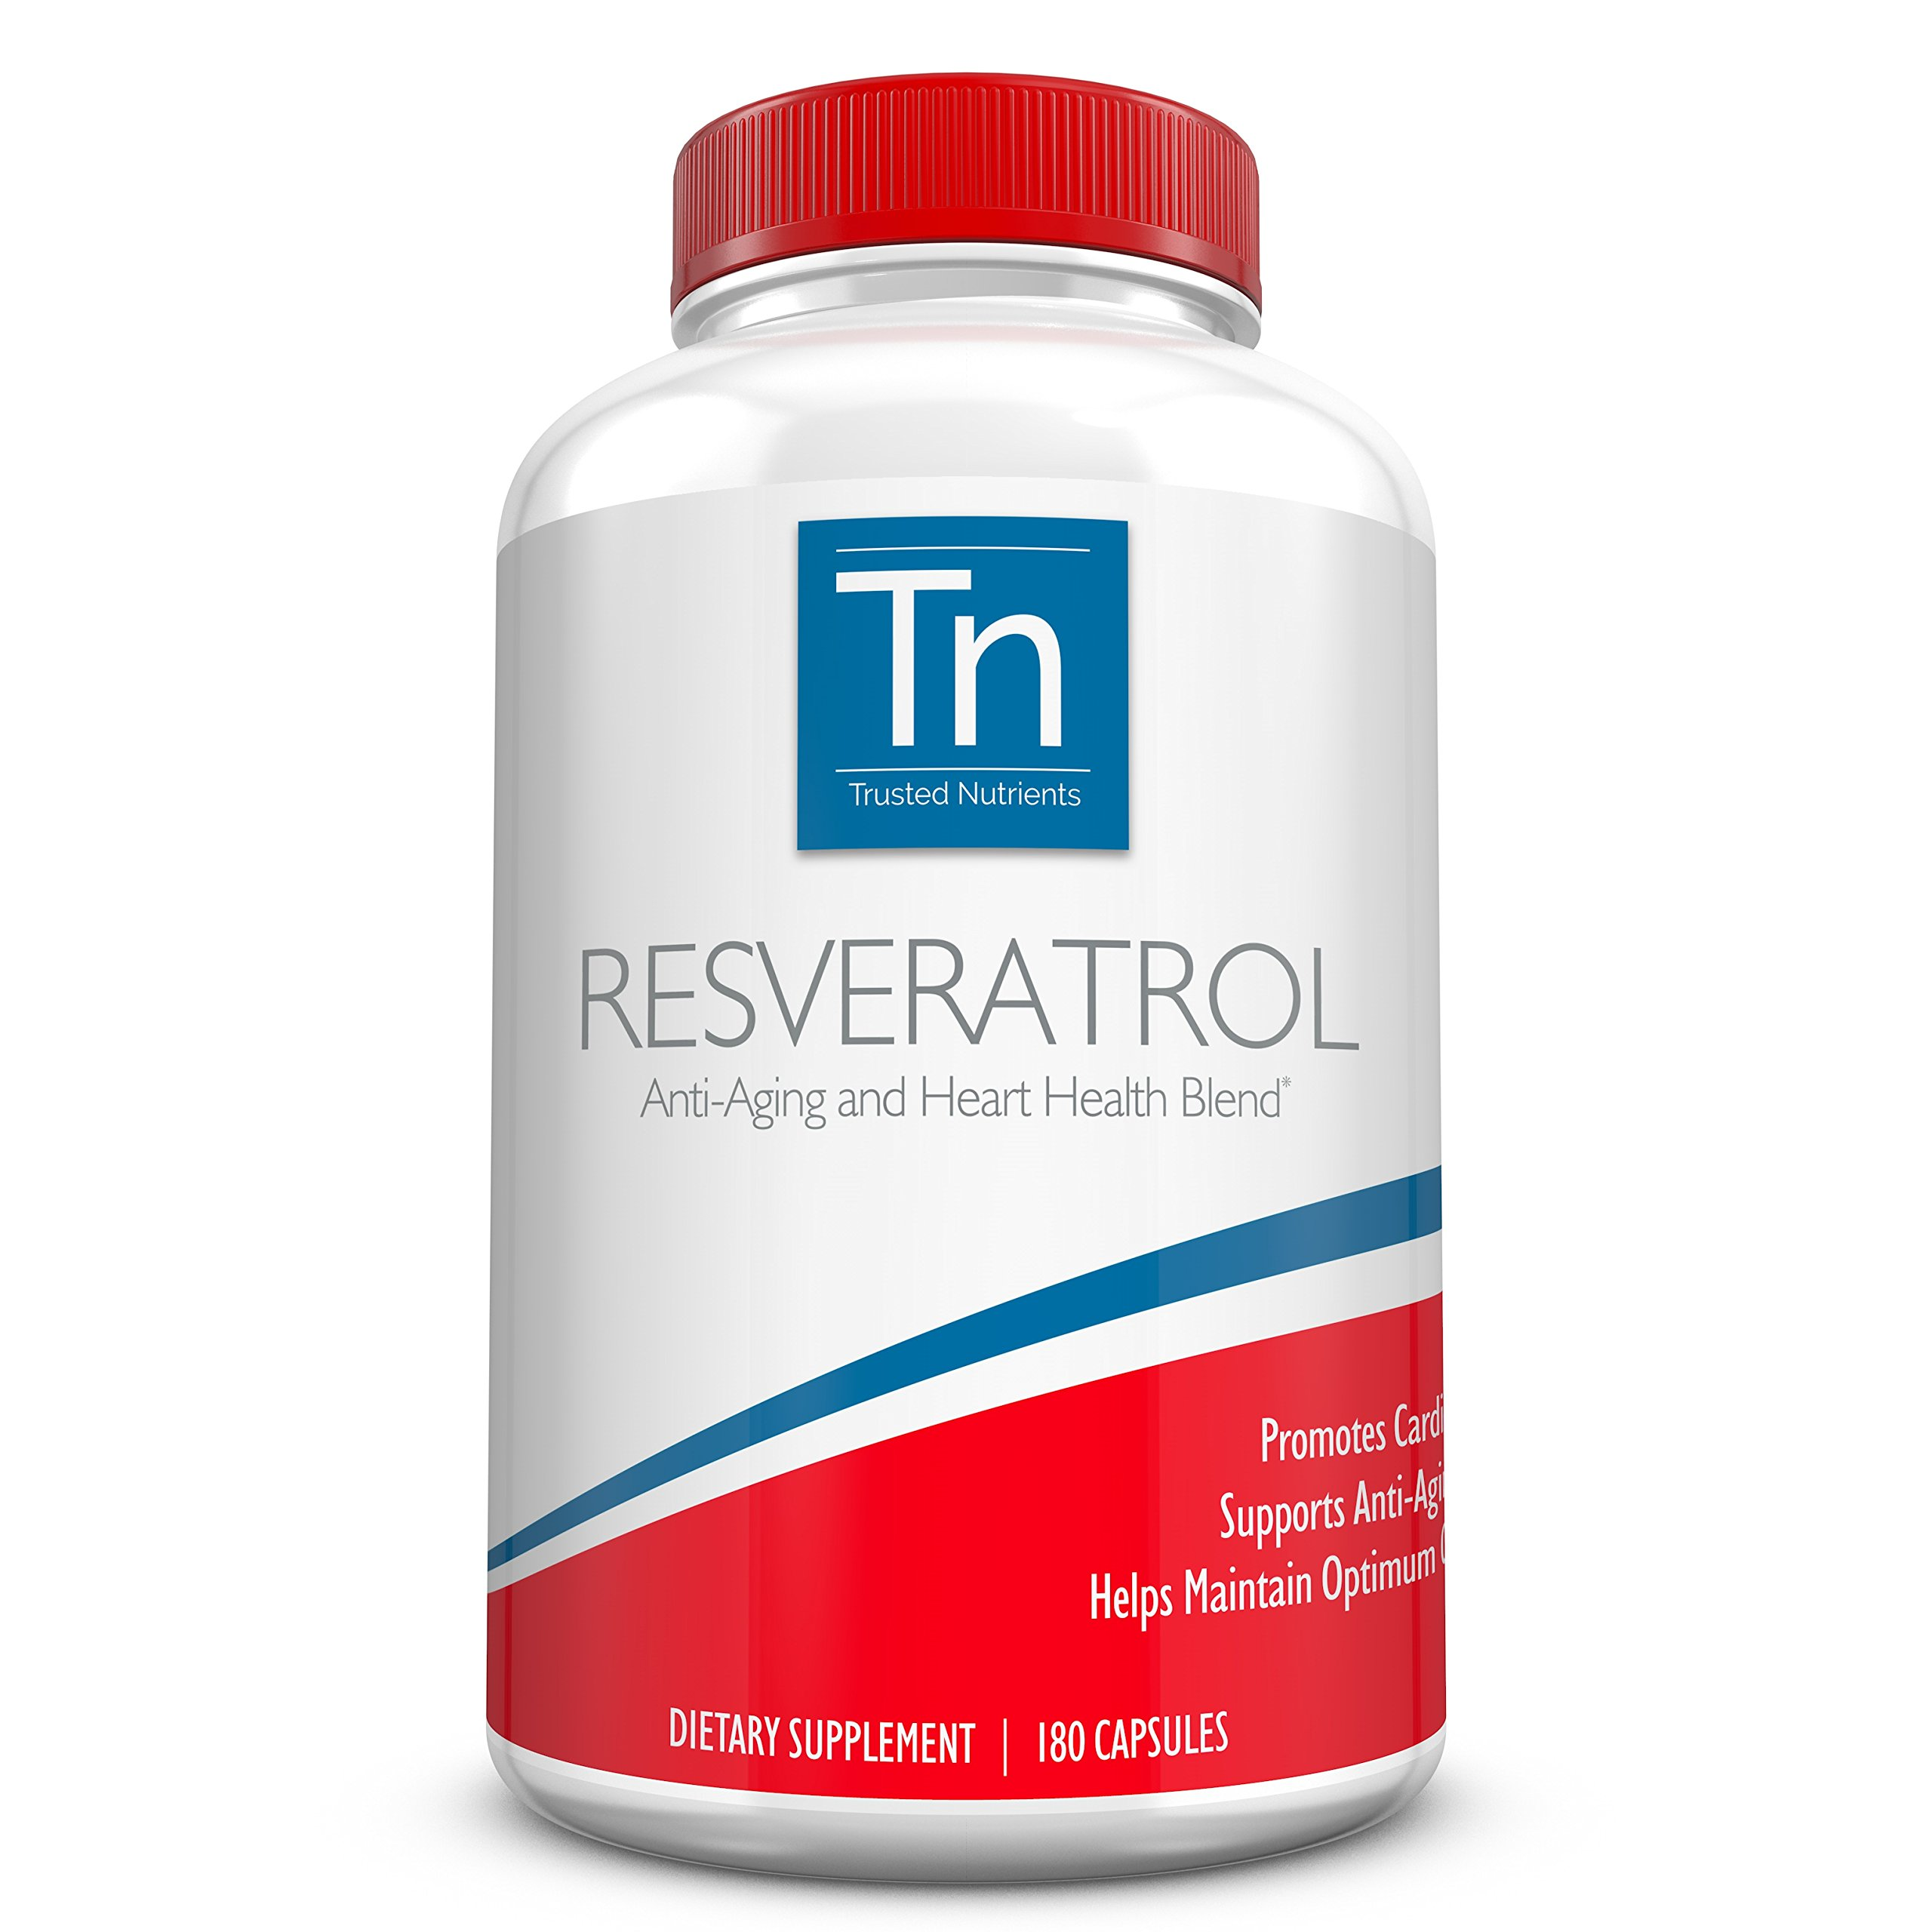 Trusted Nutrients Pure Resveratrol Supplement - Anti-Aging Blend with Trans-Resveratrol, Grape Seed Extract Containing 95% Polyphenols, Acai and Maqui Berry Extract - 1000mg 180 Veggie Capsules